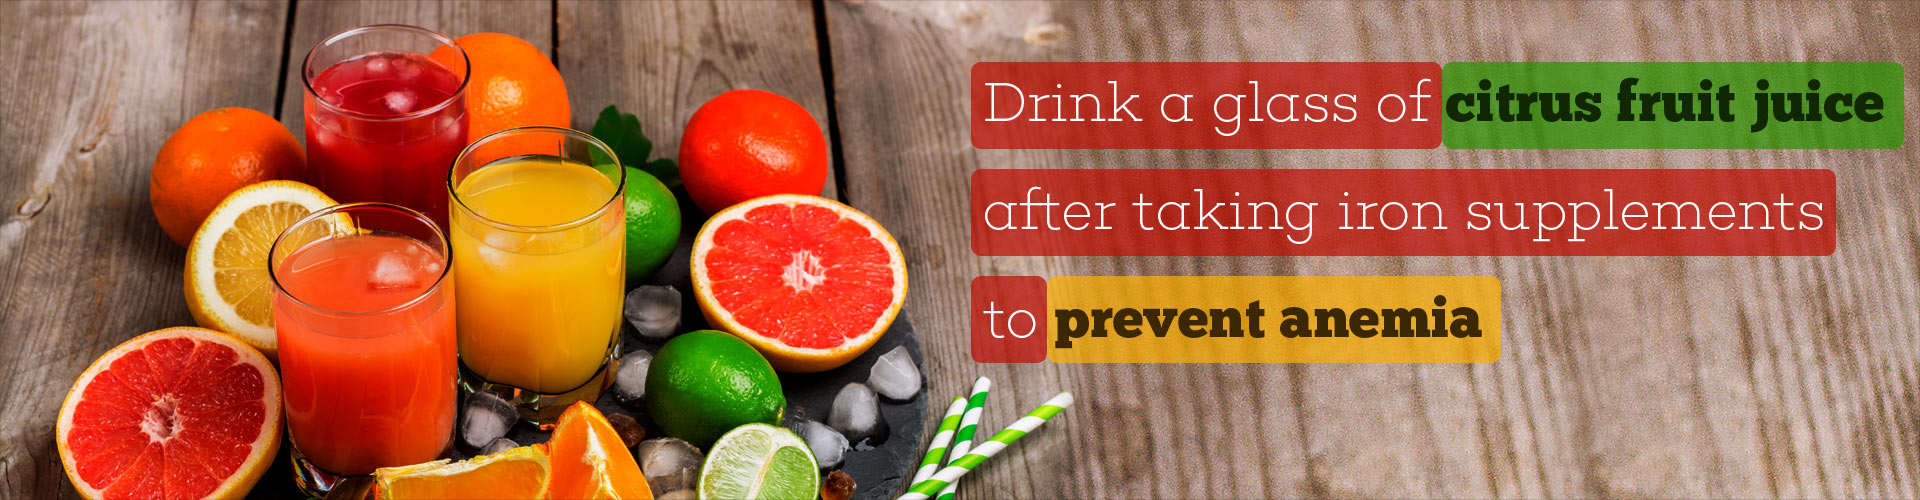 Drink a glass of citrus fruit juice after taking iron supplements to prevent anemia